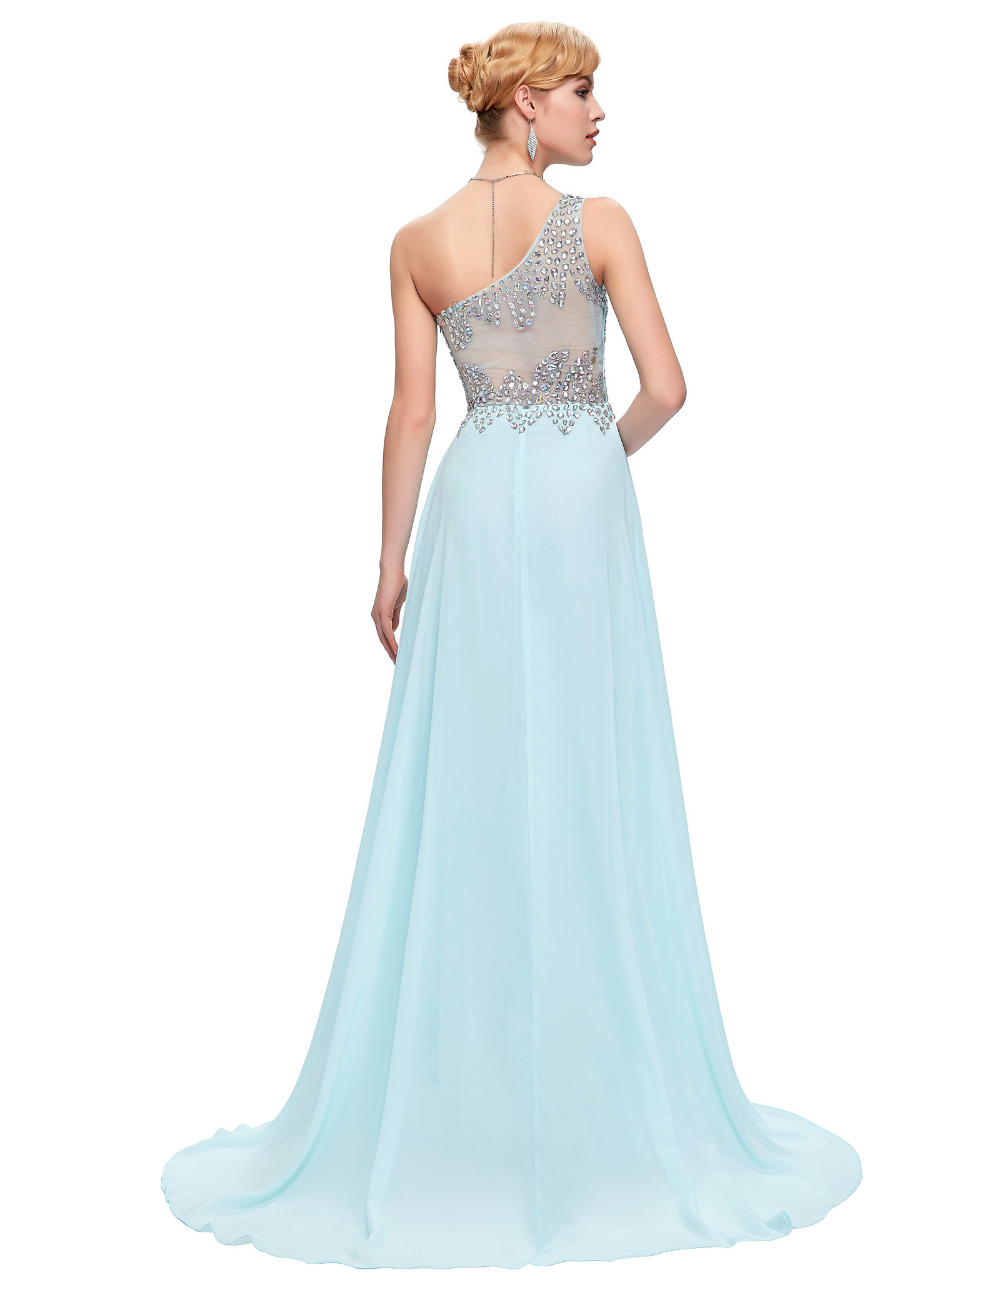 Grace karin long bridesmaid dresses light blue navy blue pink grace karin long bridesmaid dresses light blue navy blue pink green one shoulder prom gown beaded chiffon bridesmaid dress 2018 in bridesmaid dresses from ombrellifo Image collections